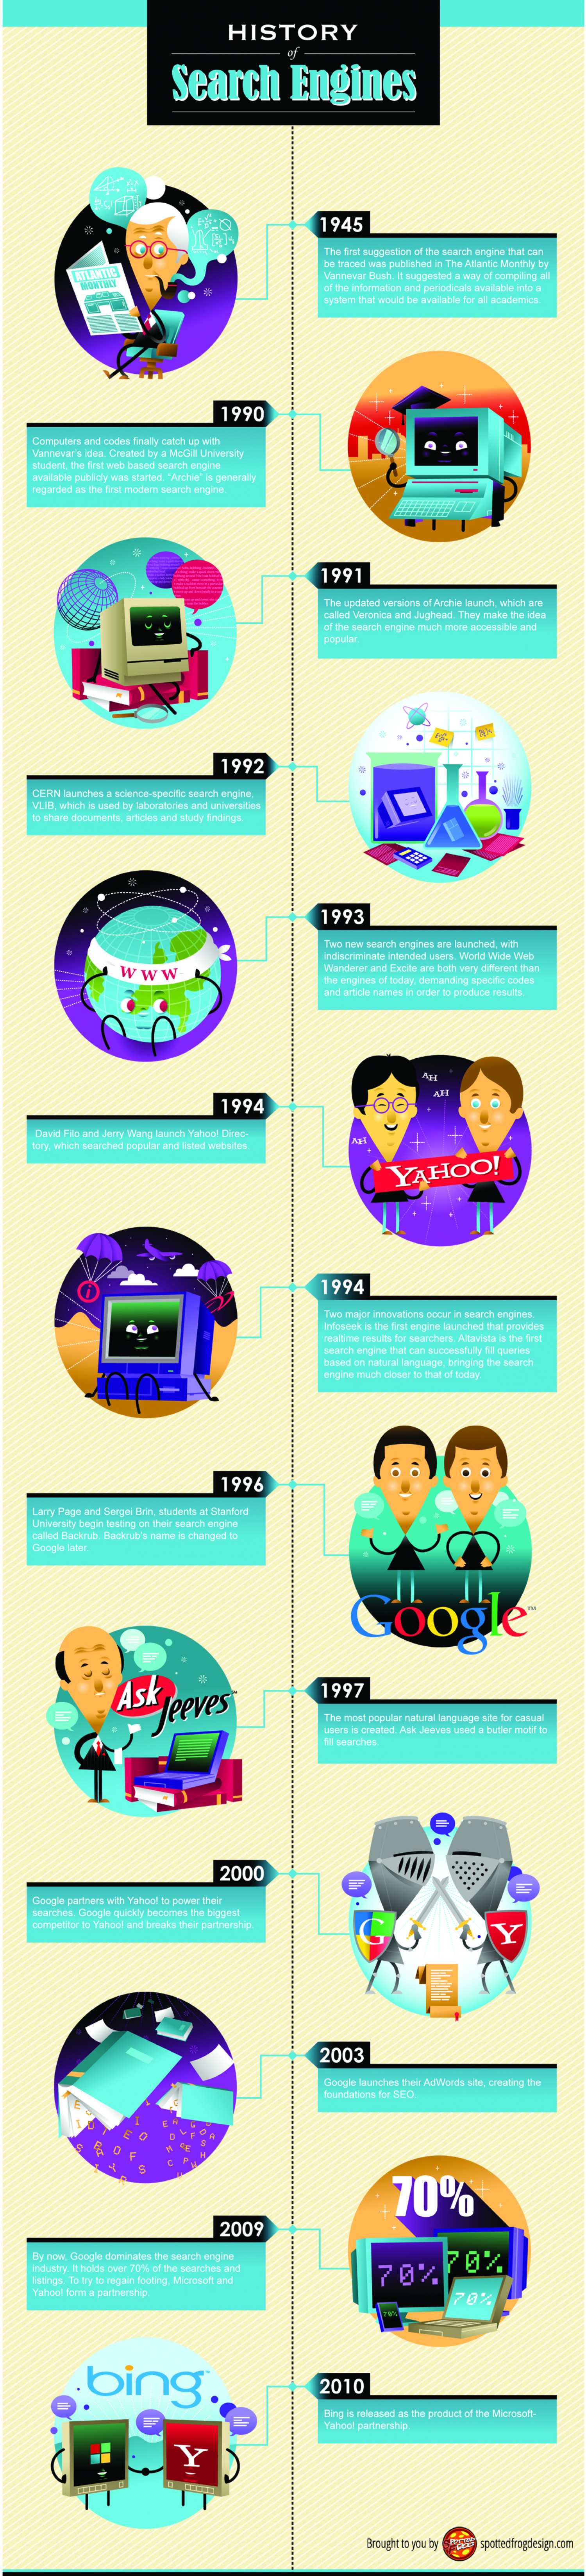 History of Search Engines Infographic